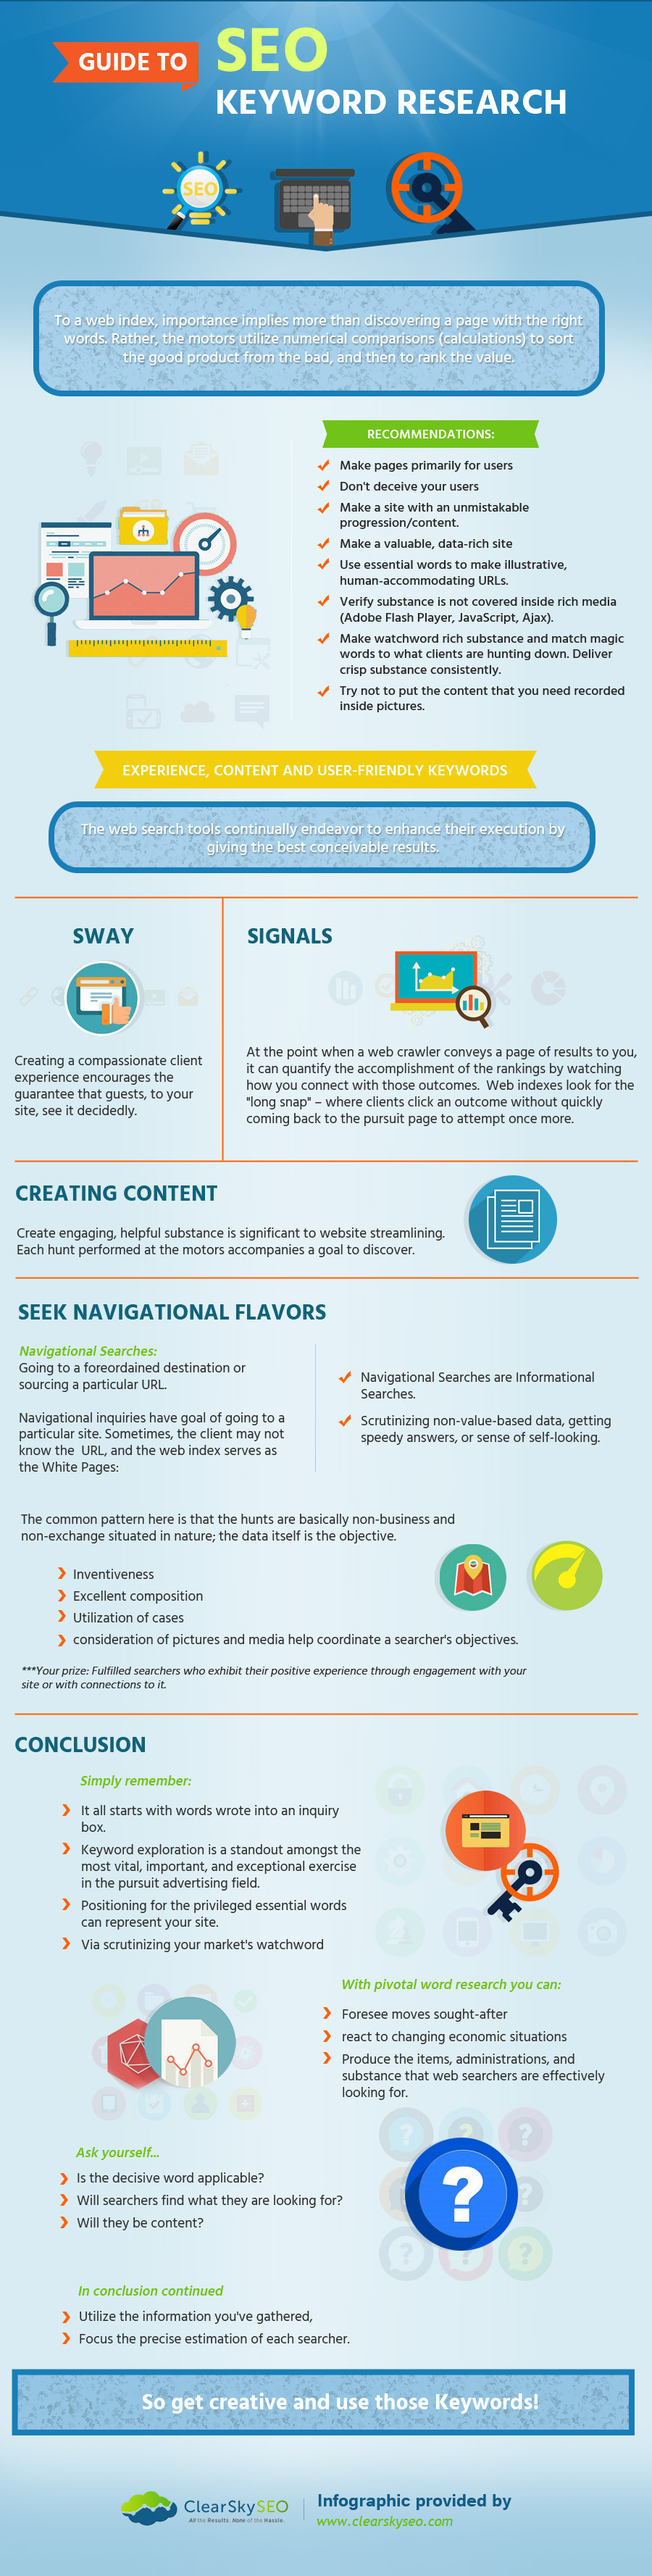 guide-to-seo-keyword-research_558ac9e19772c